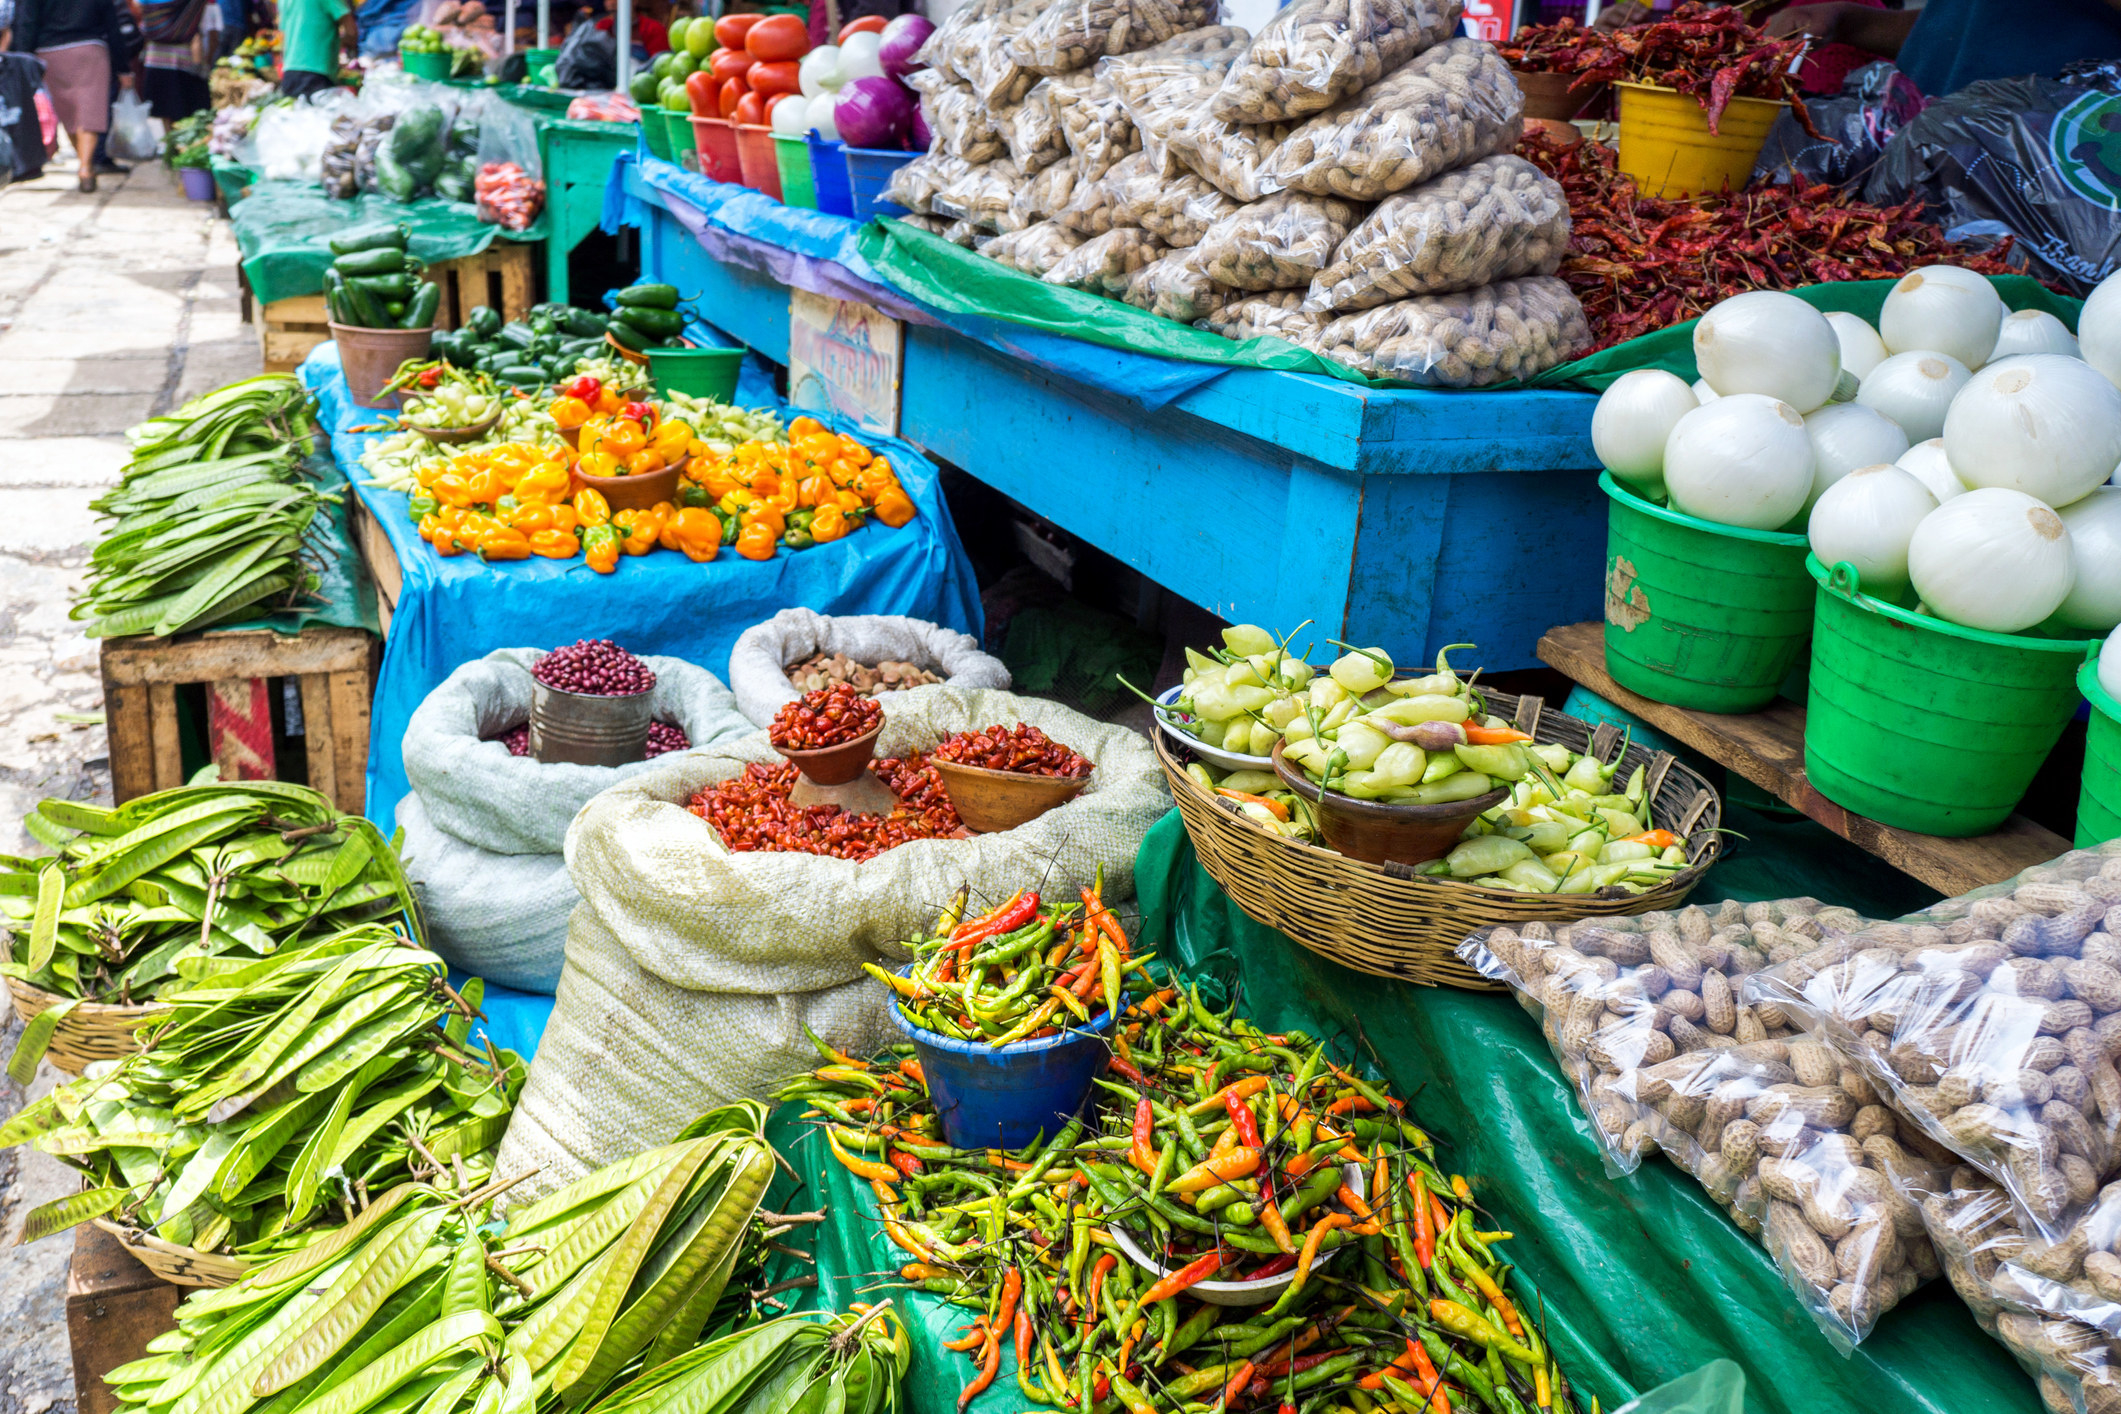 A Mexican open-air market with produce